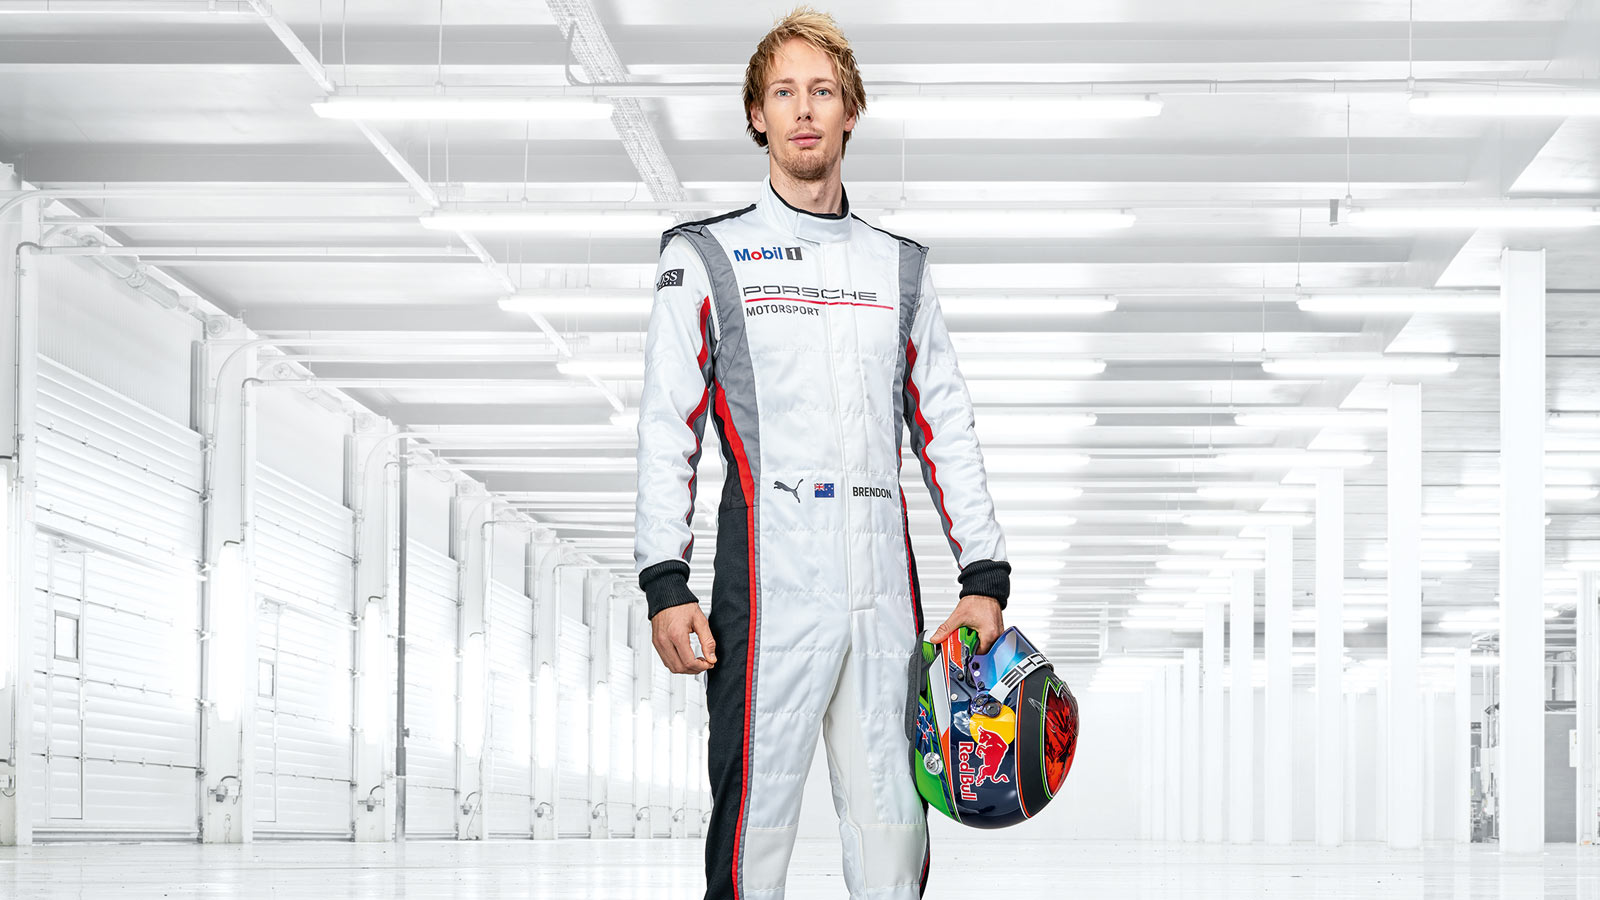 Porsche - Brendon Hartley (test and development driver) NZL